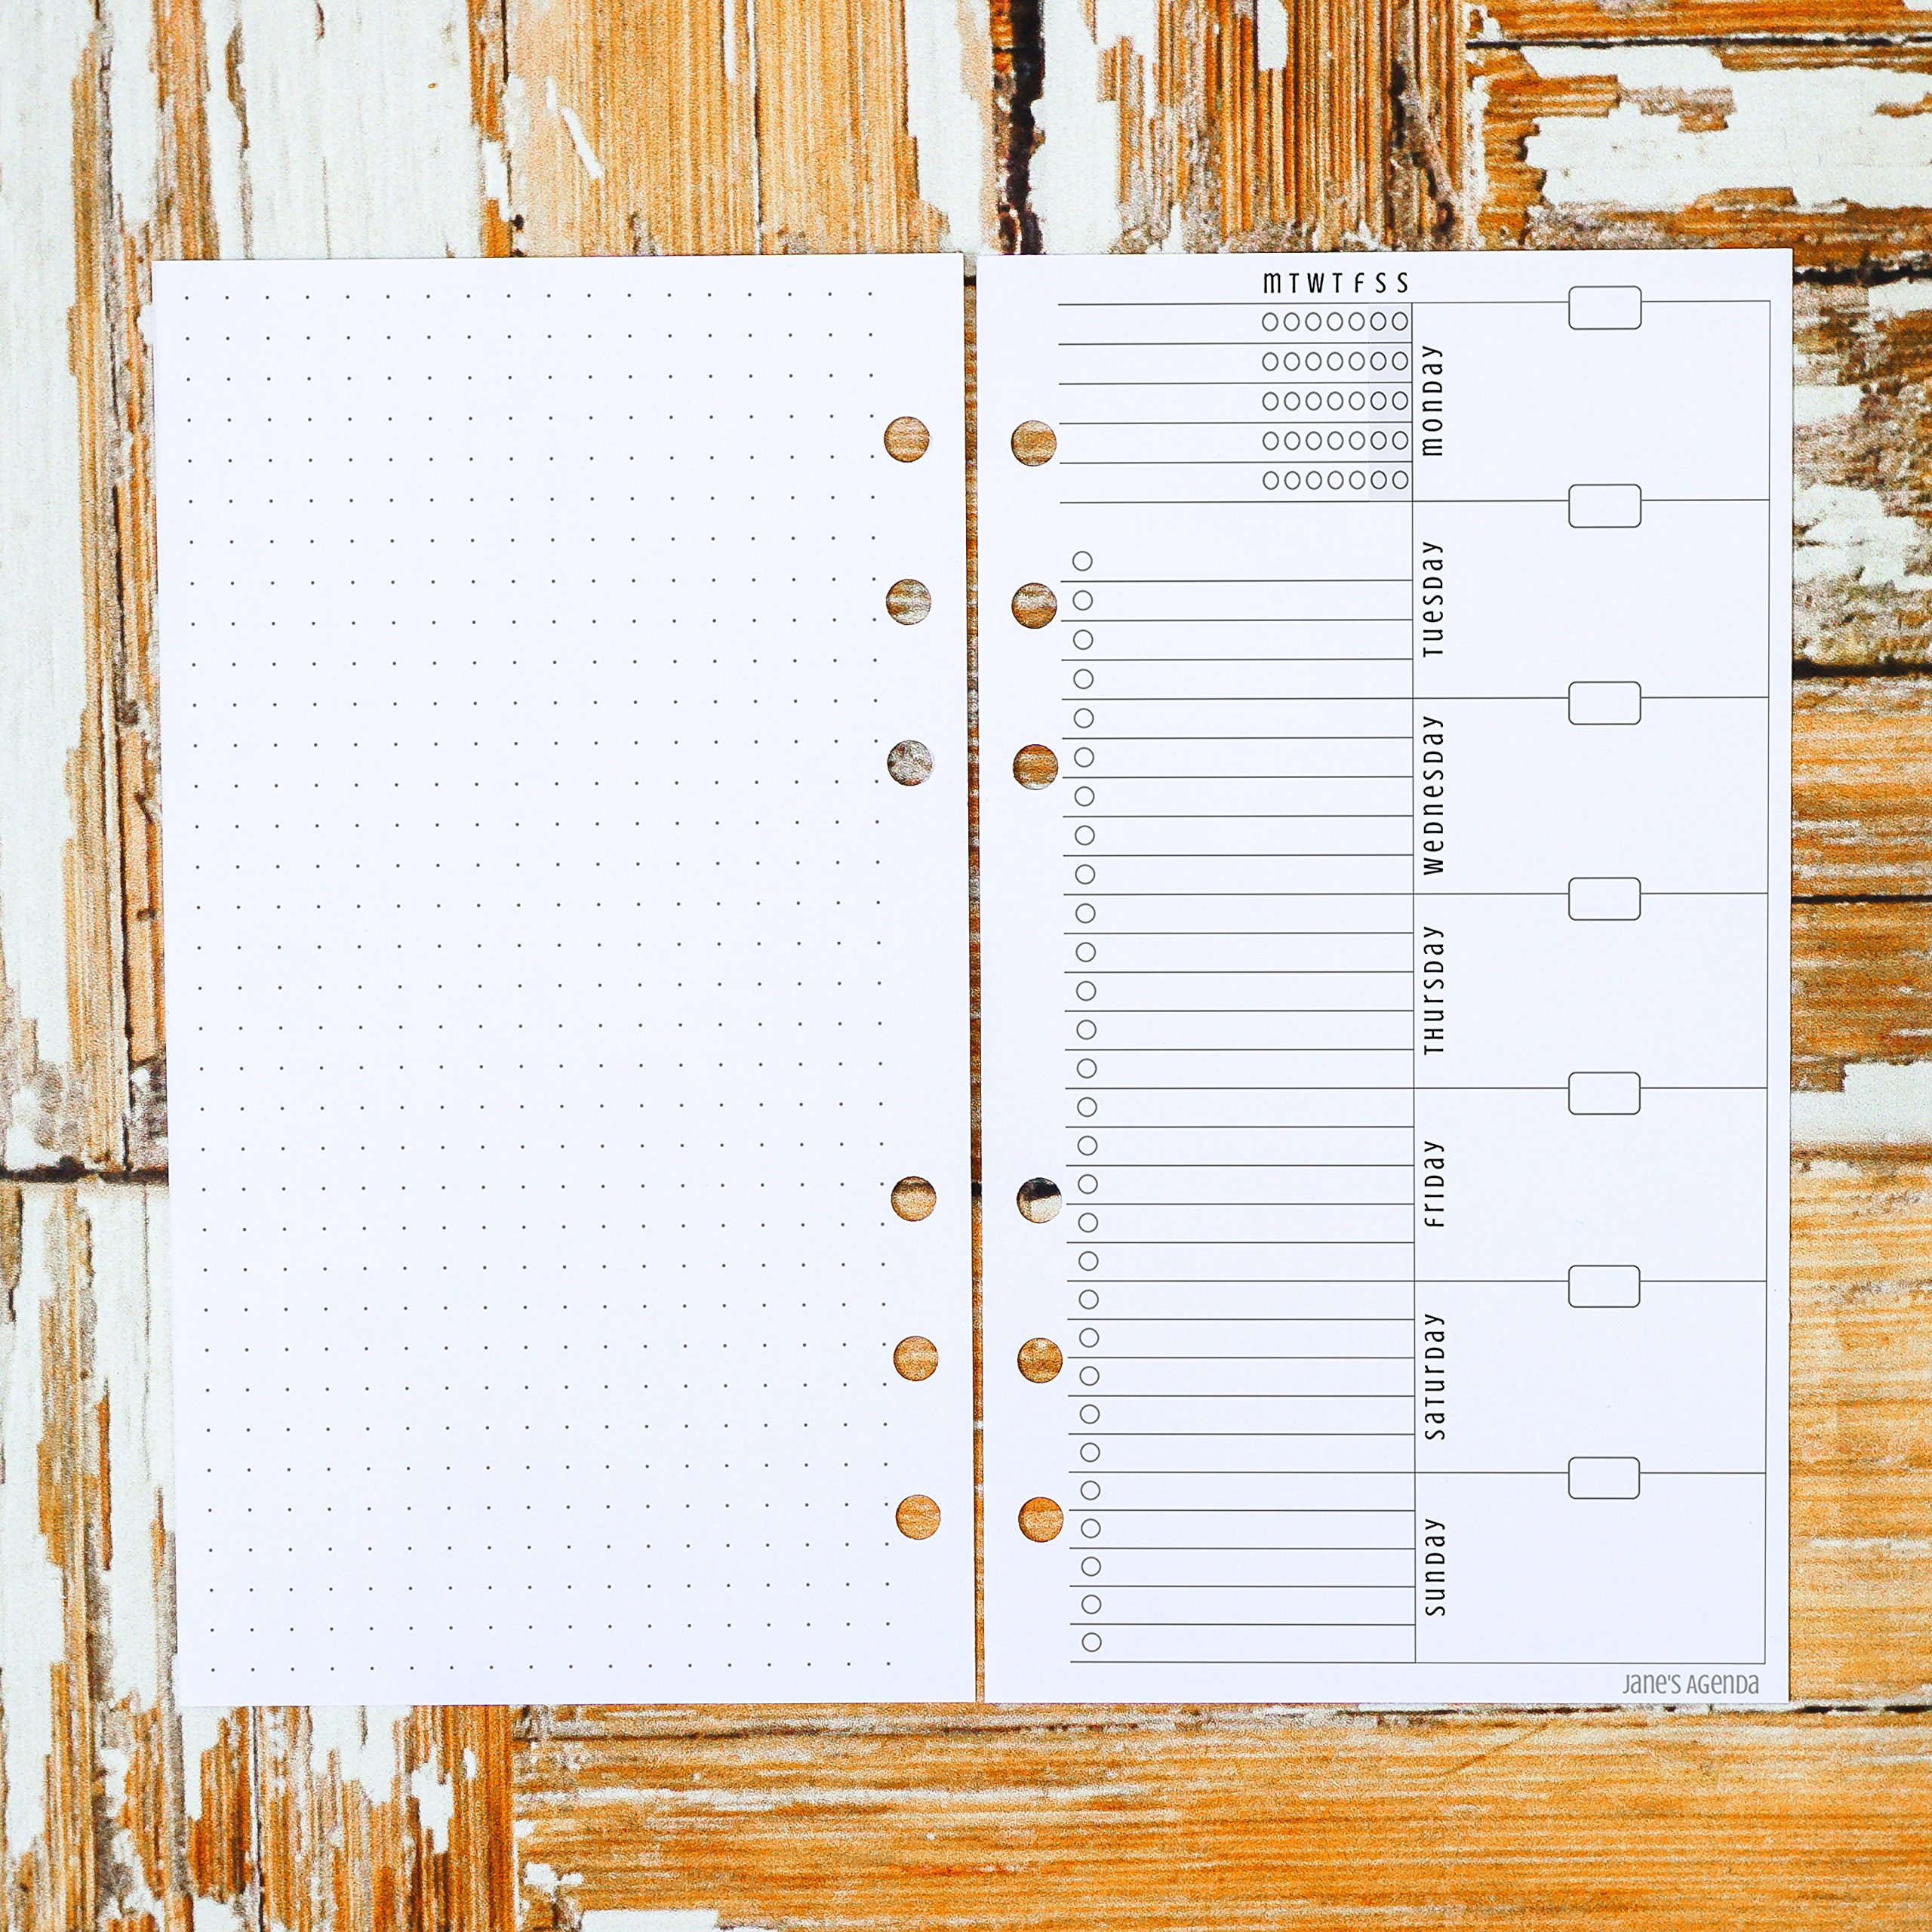 Undated Weekly Planner Inserts for use with Personal Six Ring Size Planners such as Filofax